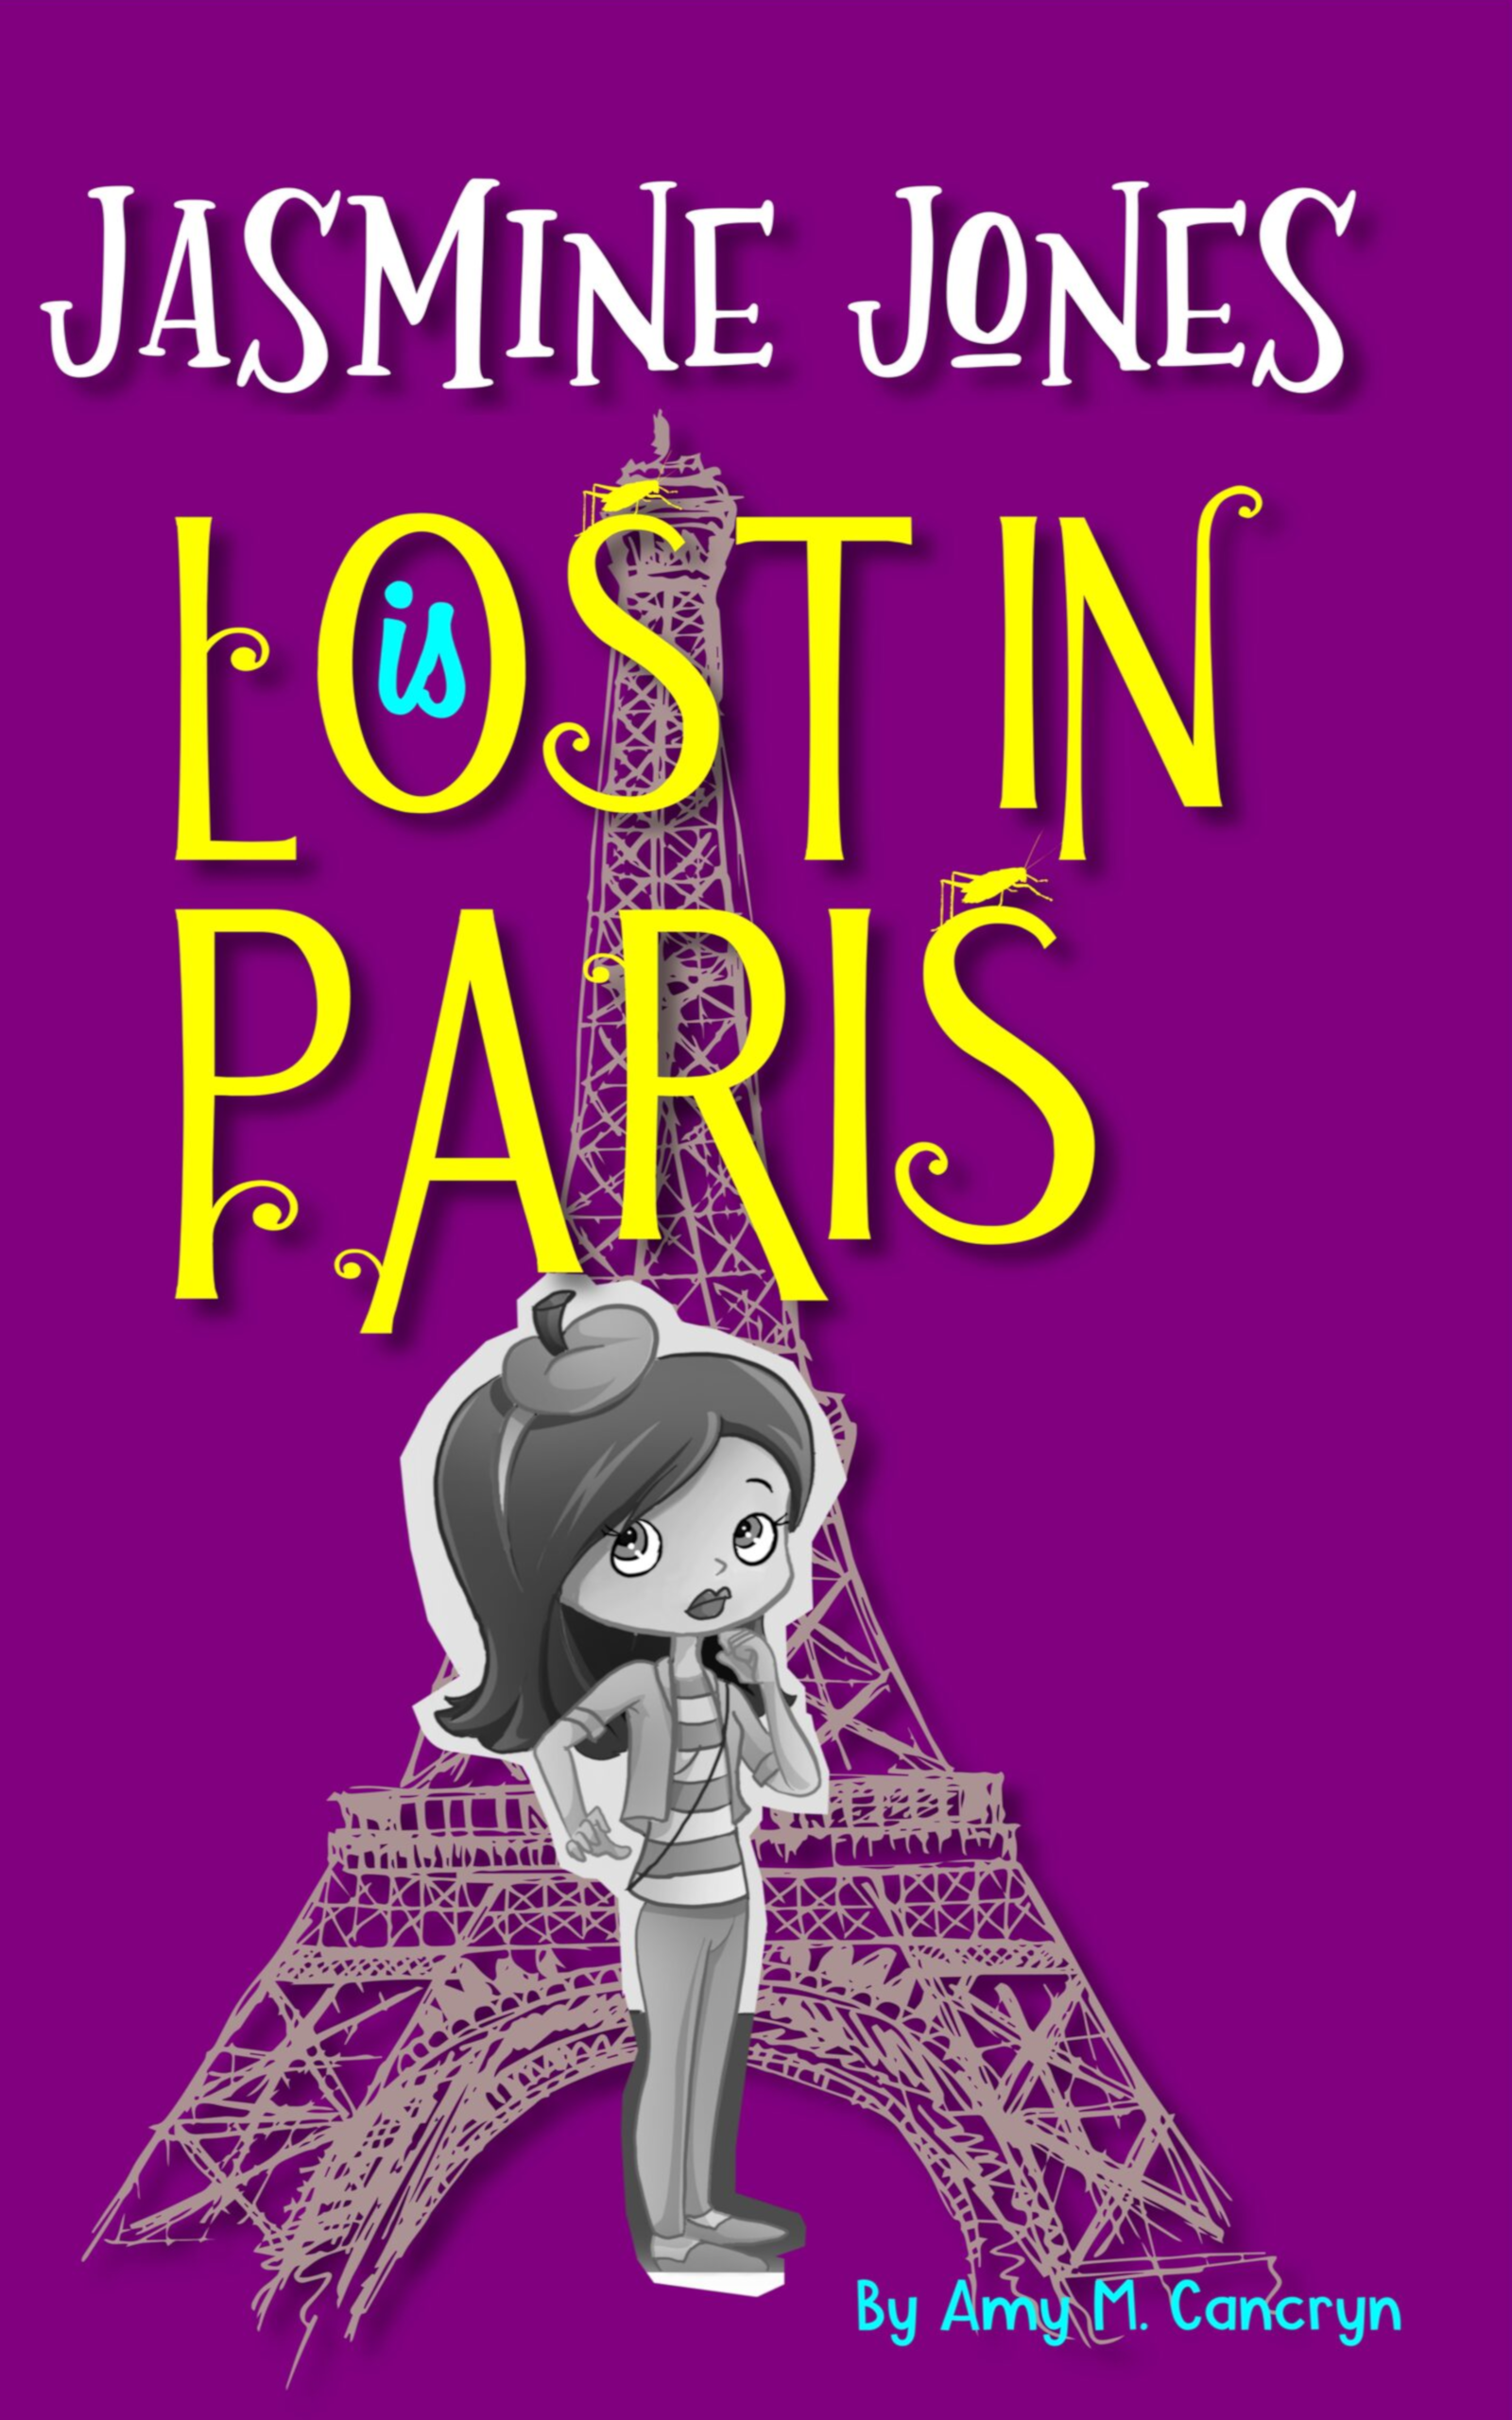 Jasmine Jones is Lost in Paris 4